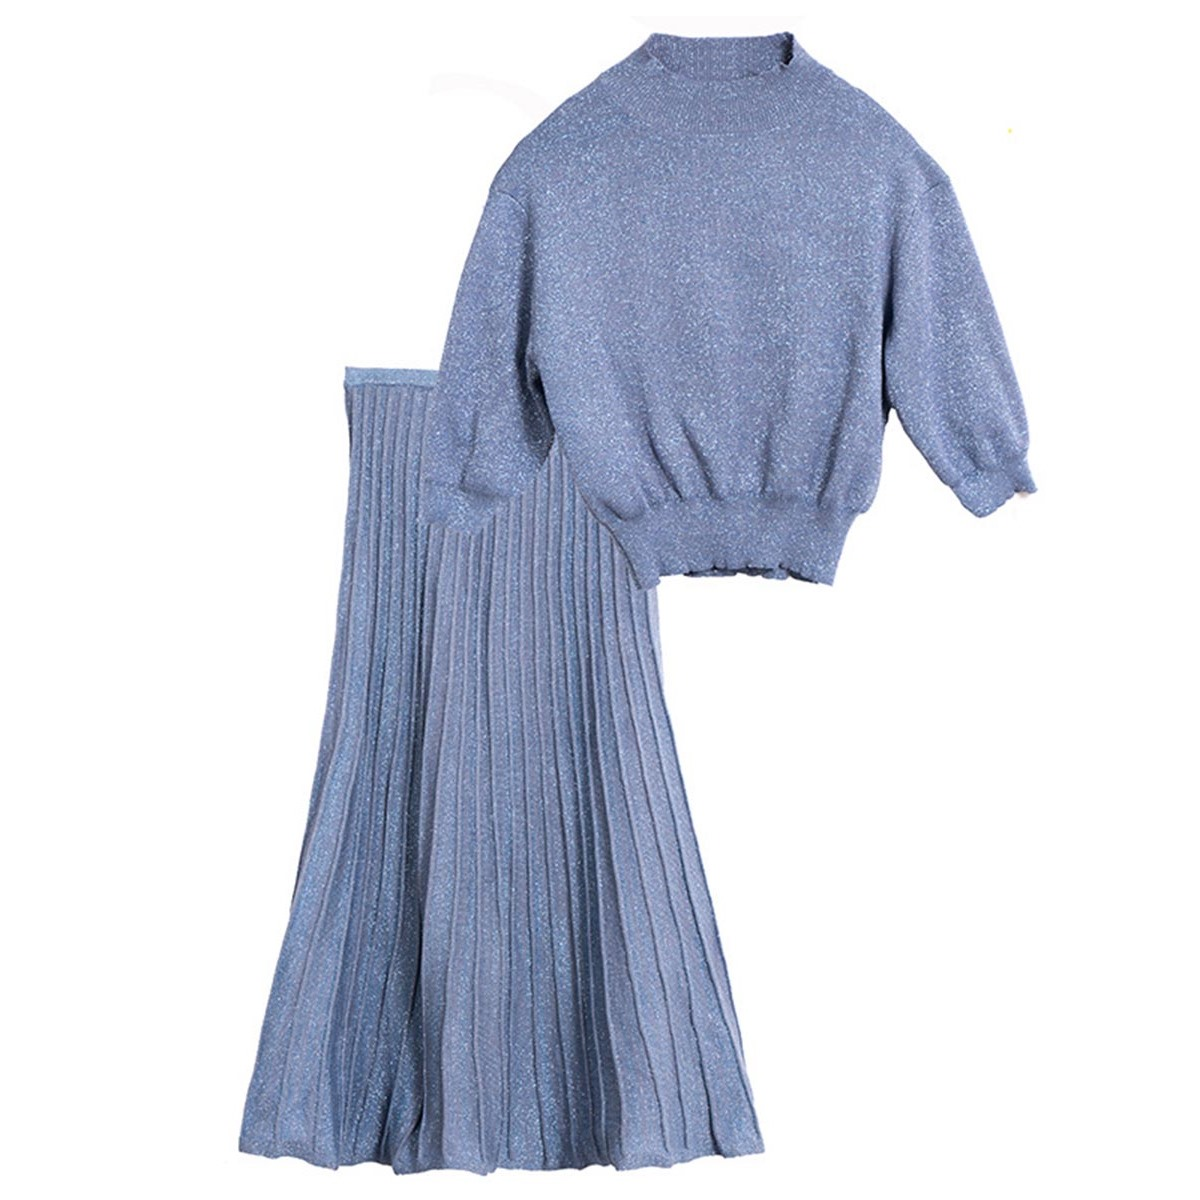 Women Sweater Skirts Suit Set Blue Elegant Pleated Midi Skirts Pullover Knitwear Tops Female Knitted Casual Suit Set